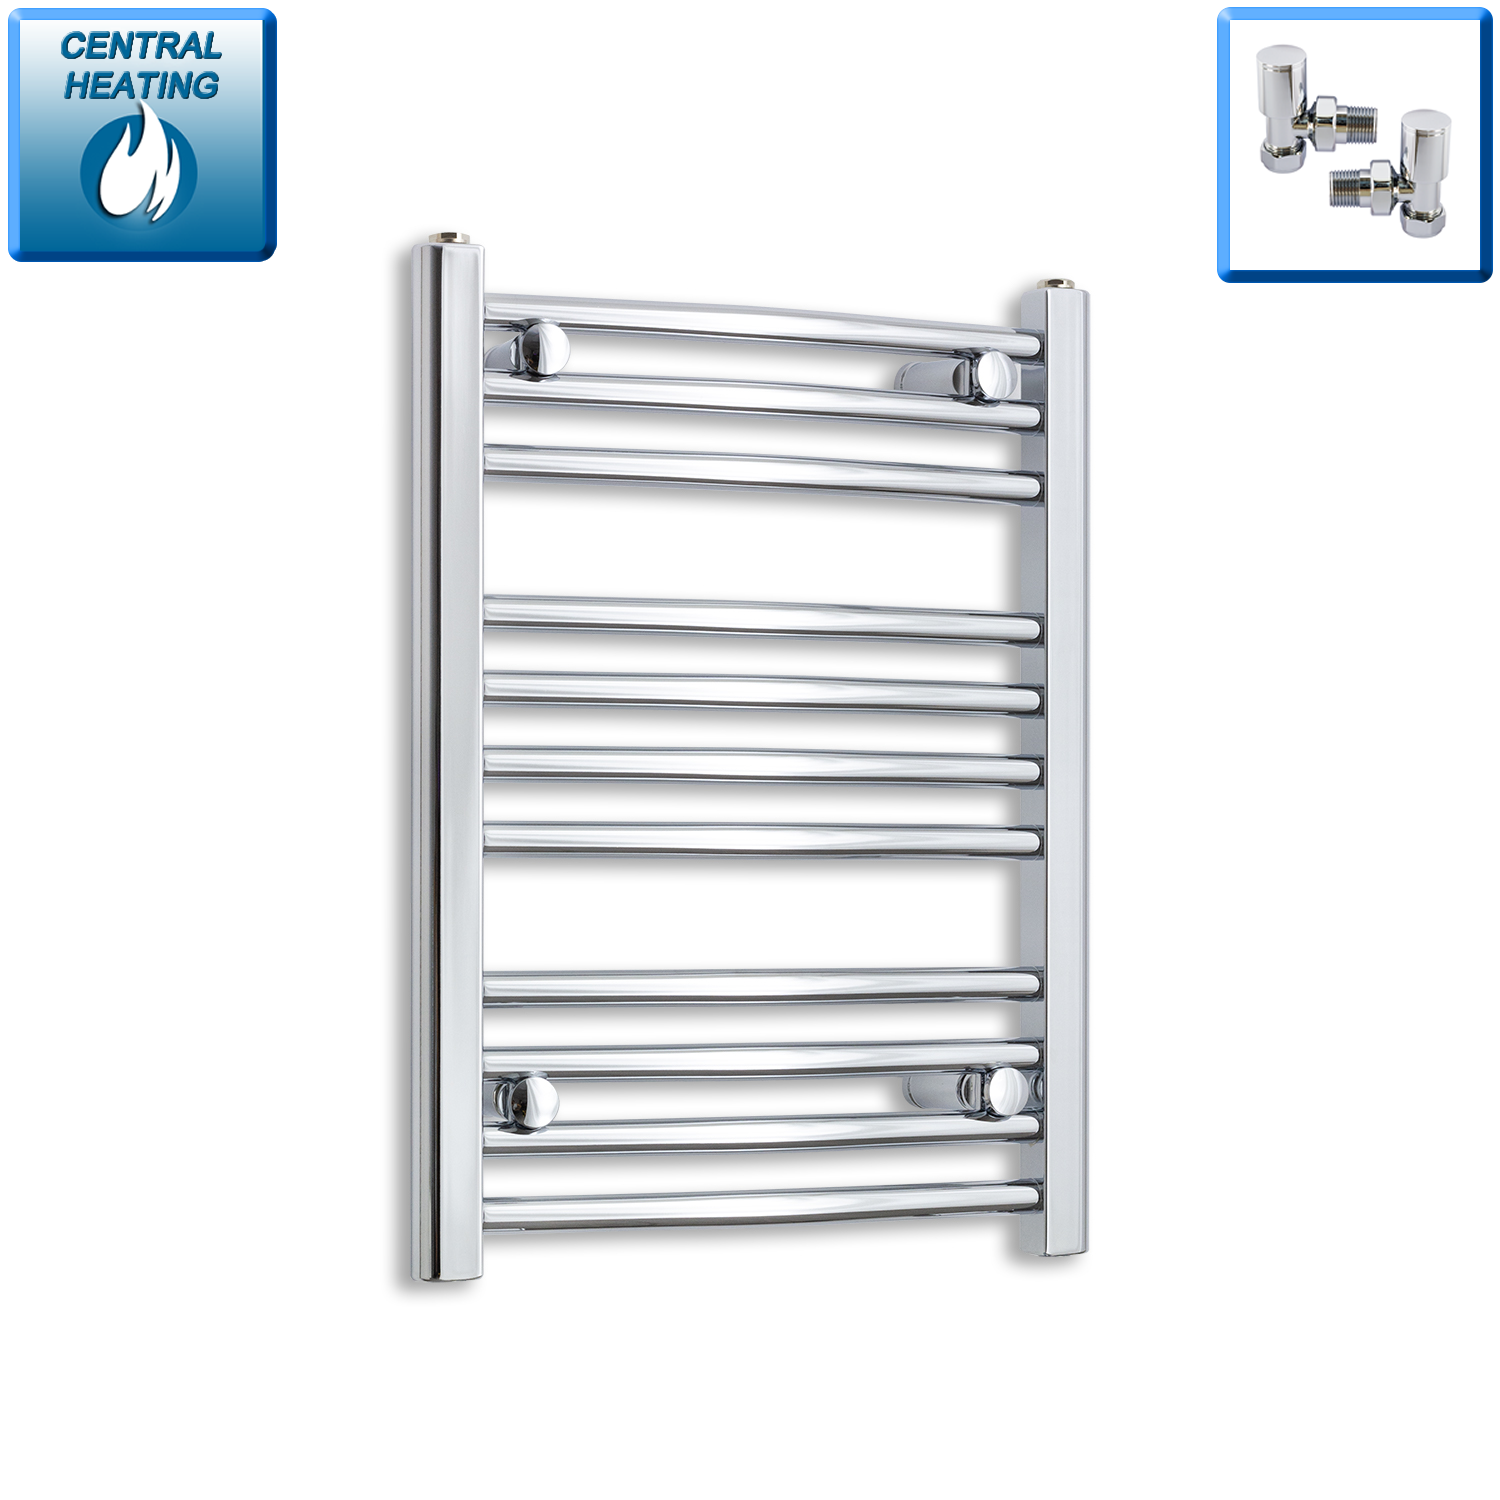 450mm Wide 600mm High Flat Chrome Heated Towel Rail Radiator HTR,With Angled Valve